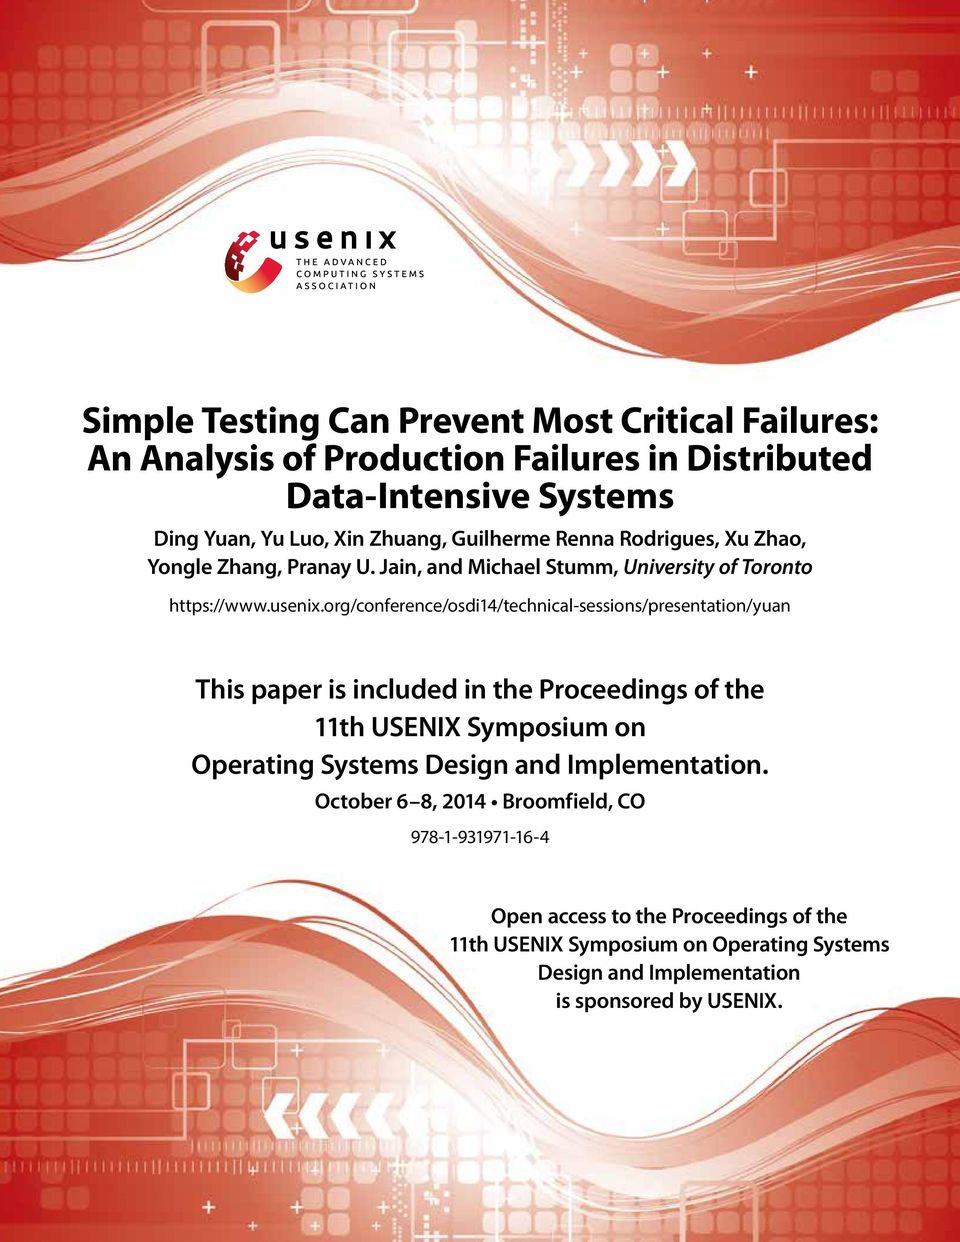 org/conference/osdi14/technical-sessions/presentation/yuan This paper is included in the Proceedings of the 11th USENIX Symposium on Operating Systems Design